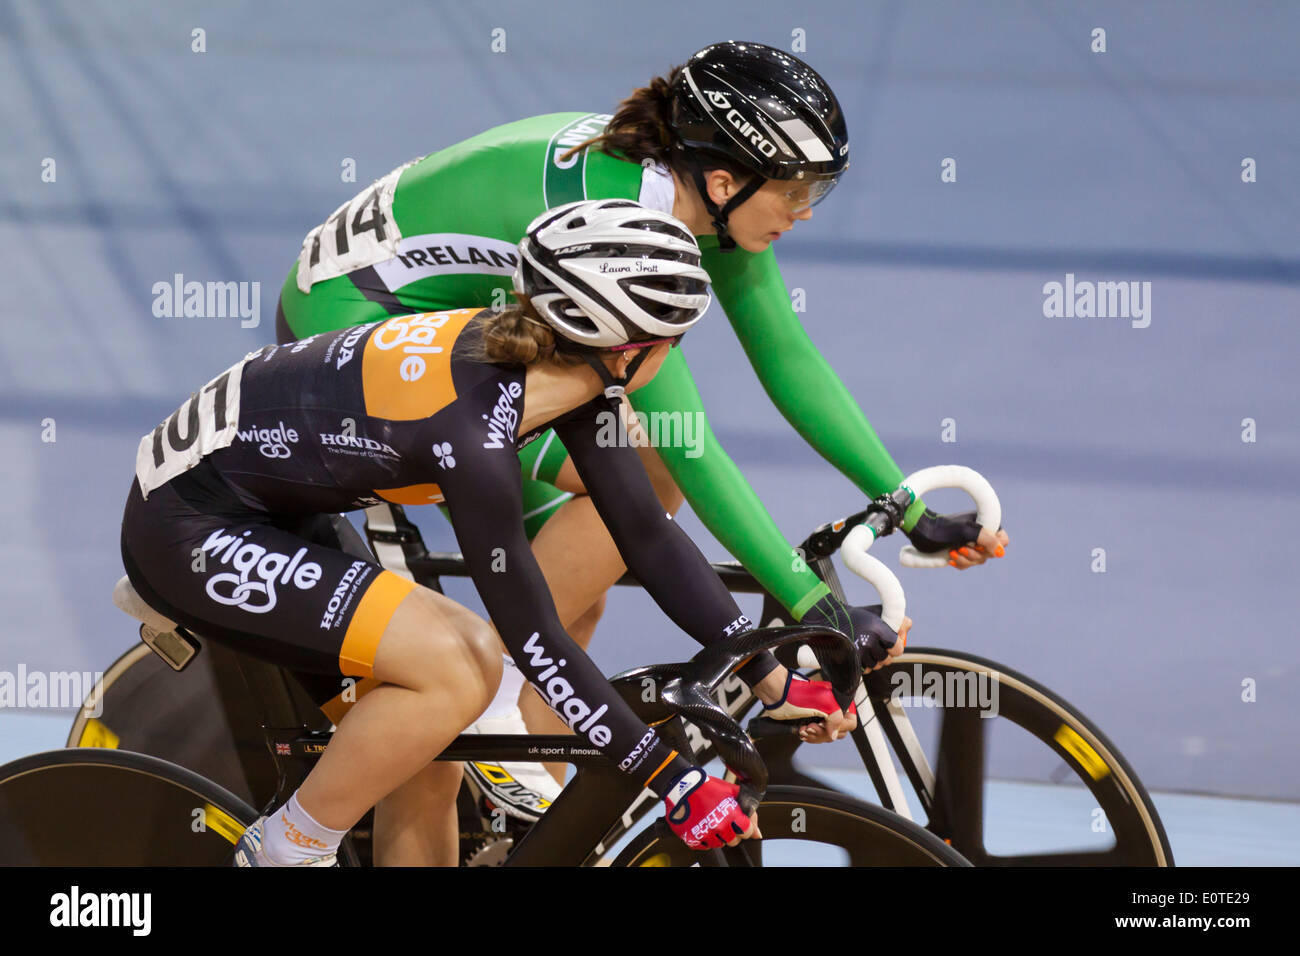 Laura Kenny (Laura Trott) (f) und Caroline Ryan (b) in der Frauen Omnium auf Revolution 5 2014, Lee Valley Velopark Stockbild